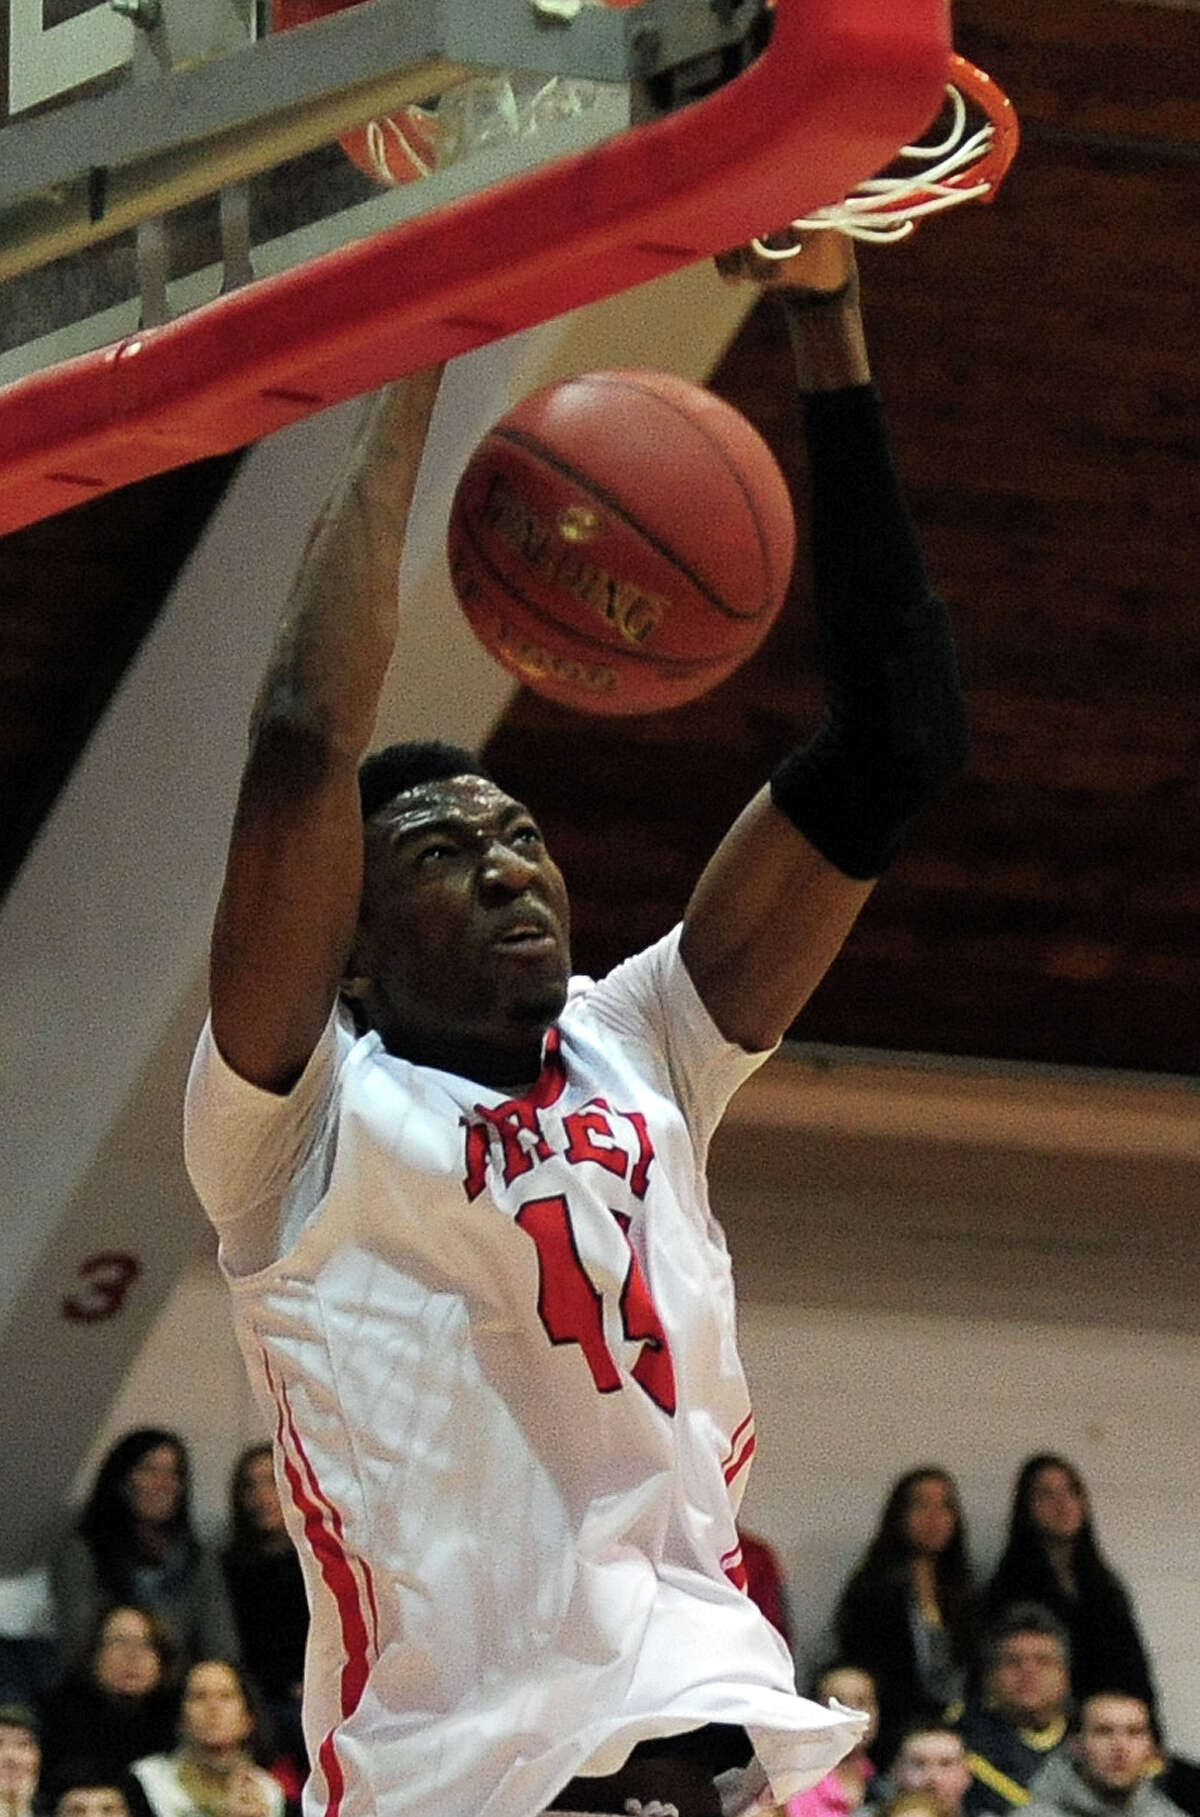 Fairfield Prep's Paschal Chukwu slam dunks the ball, during boys basketball action against Hillhouse in Fairfield, Conn. on Saturday January 4, 2014.